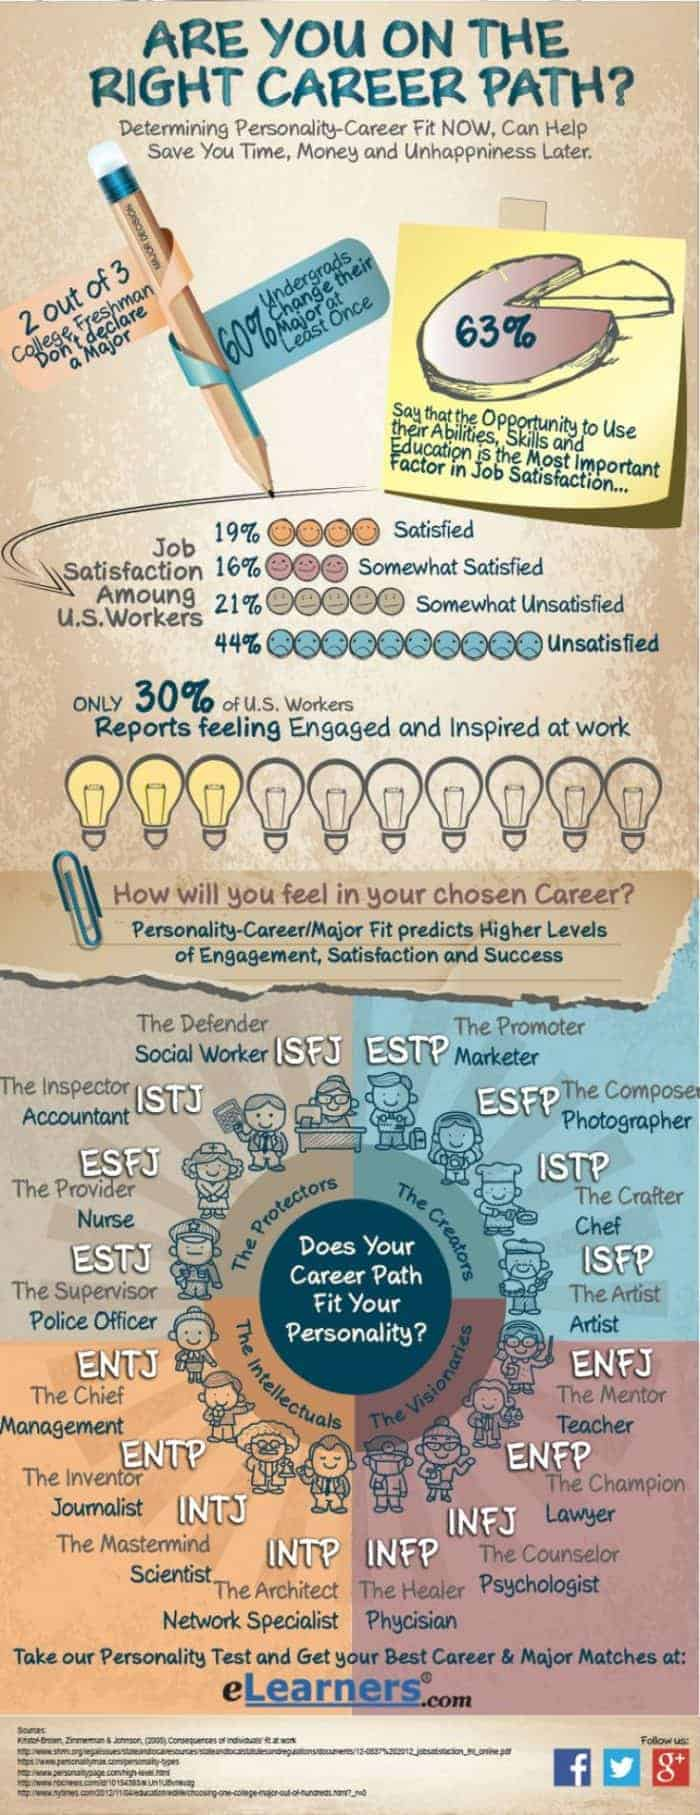 are you on the right career path